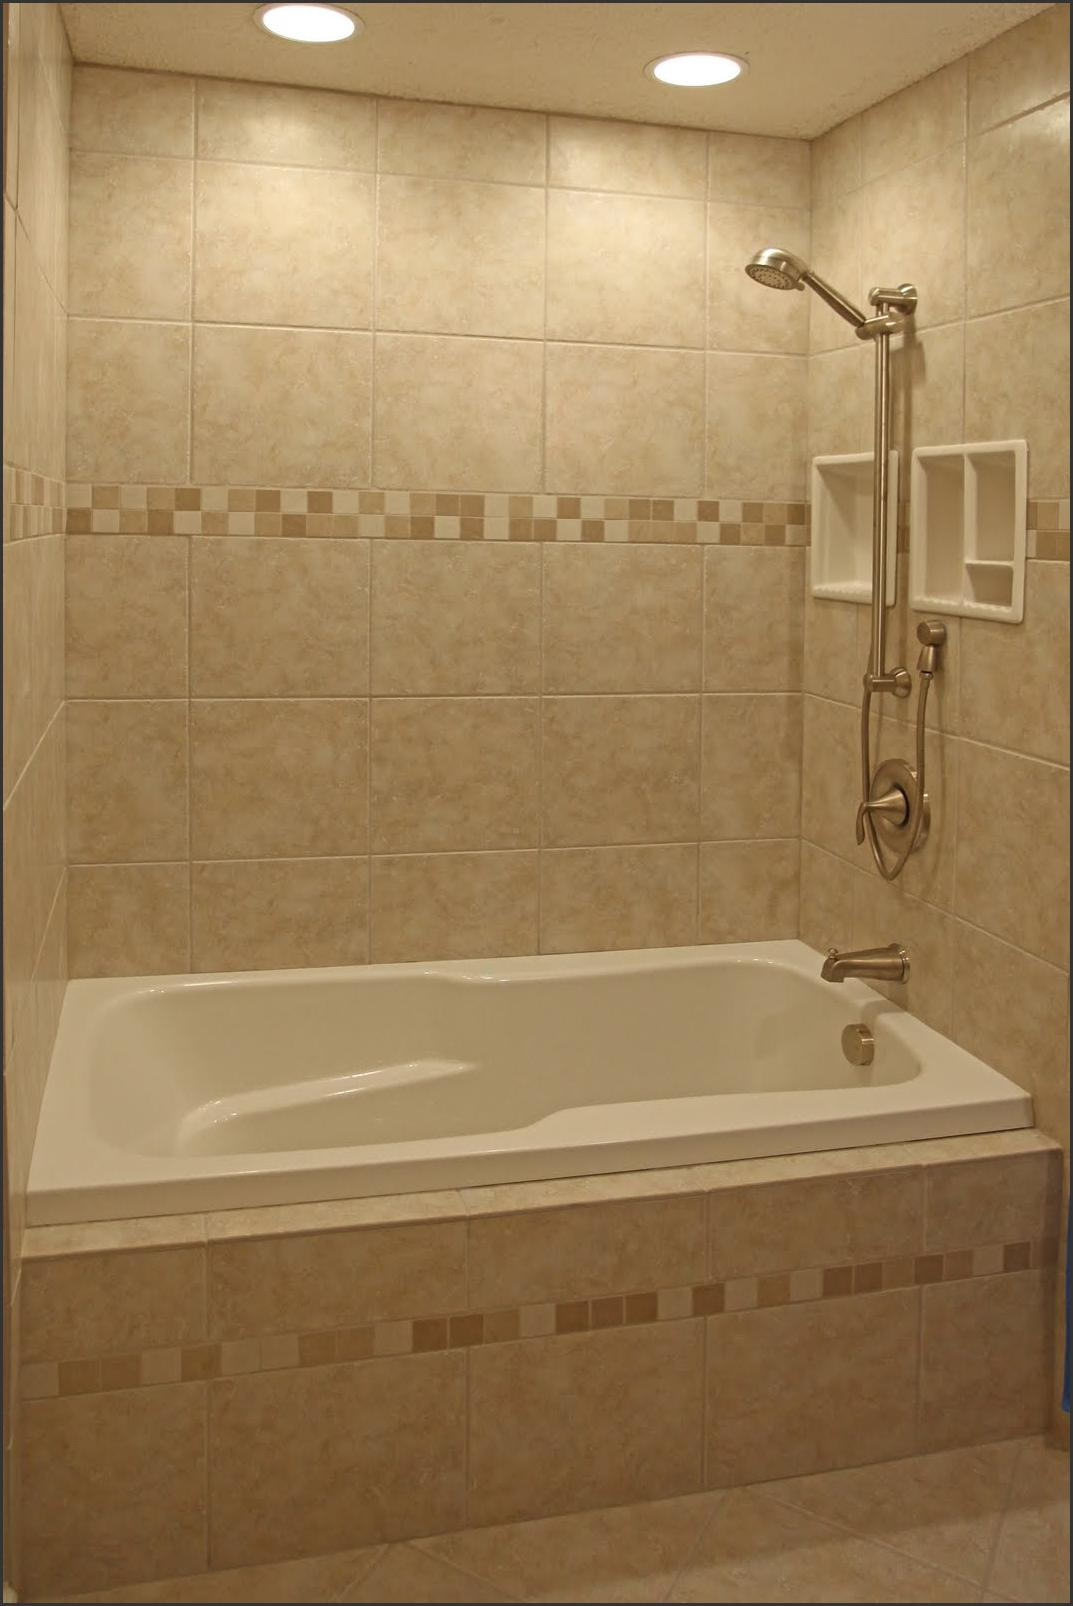 Bathroom Tile Design Ideas Beauteous Shower Wall Tile Designs